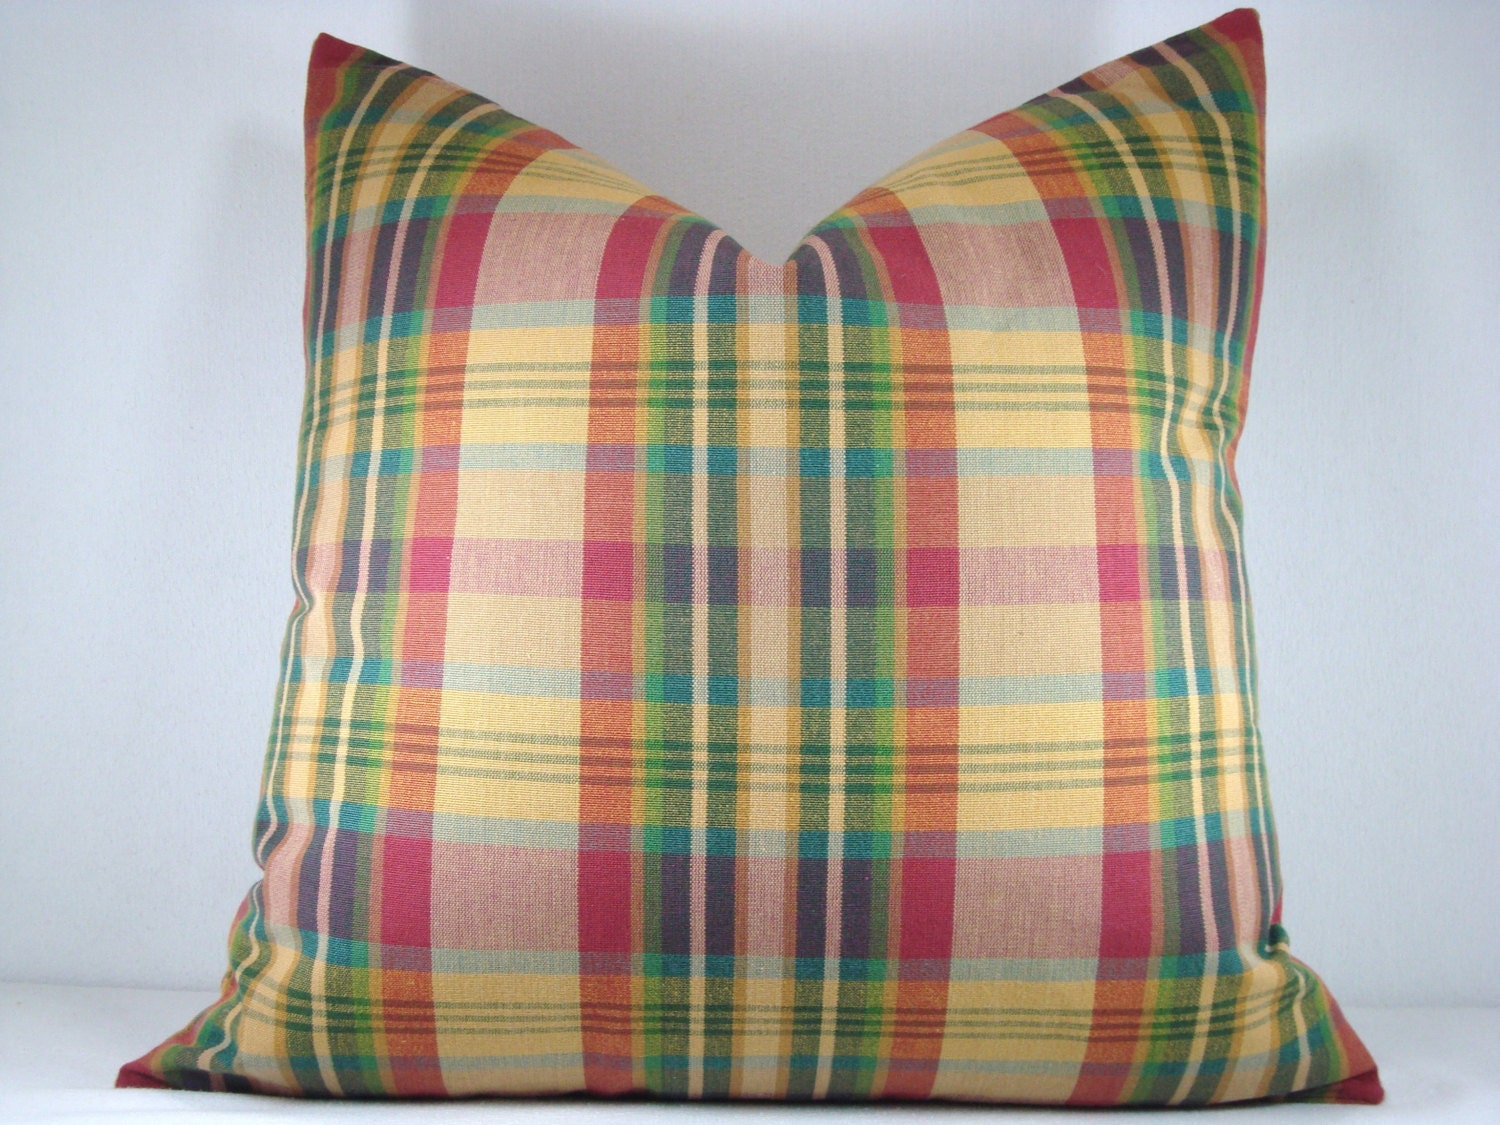 Decorative Plaid Pillows : Plaid Decorative Pillow Accent Pillow Rustic Woven Plaid